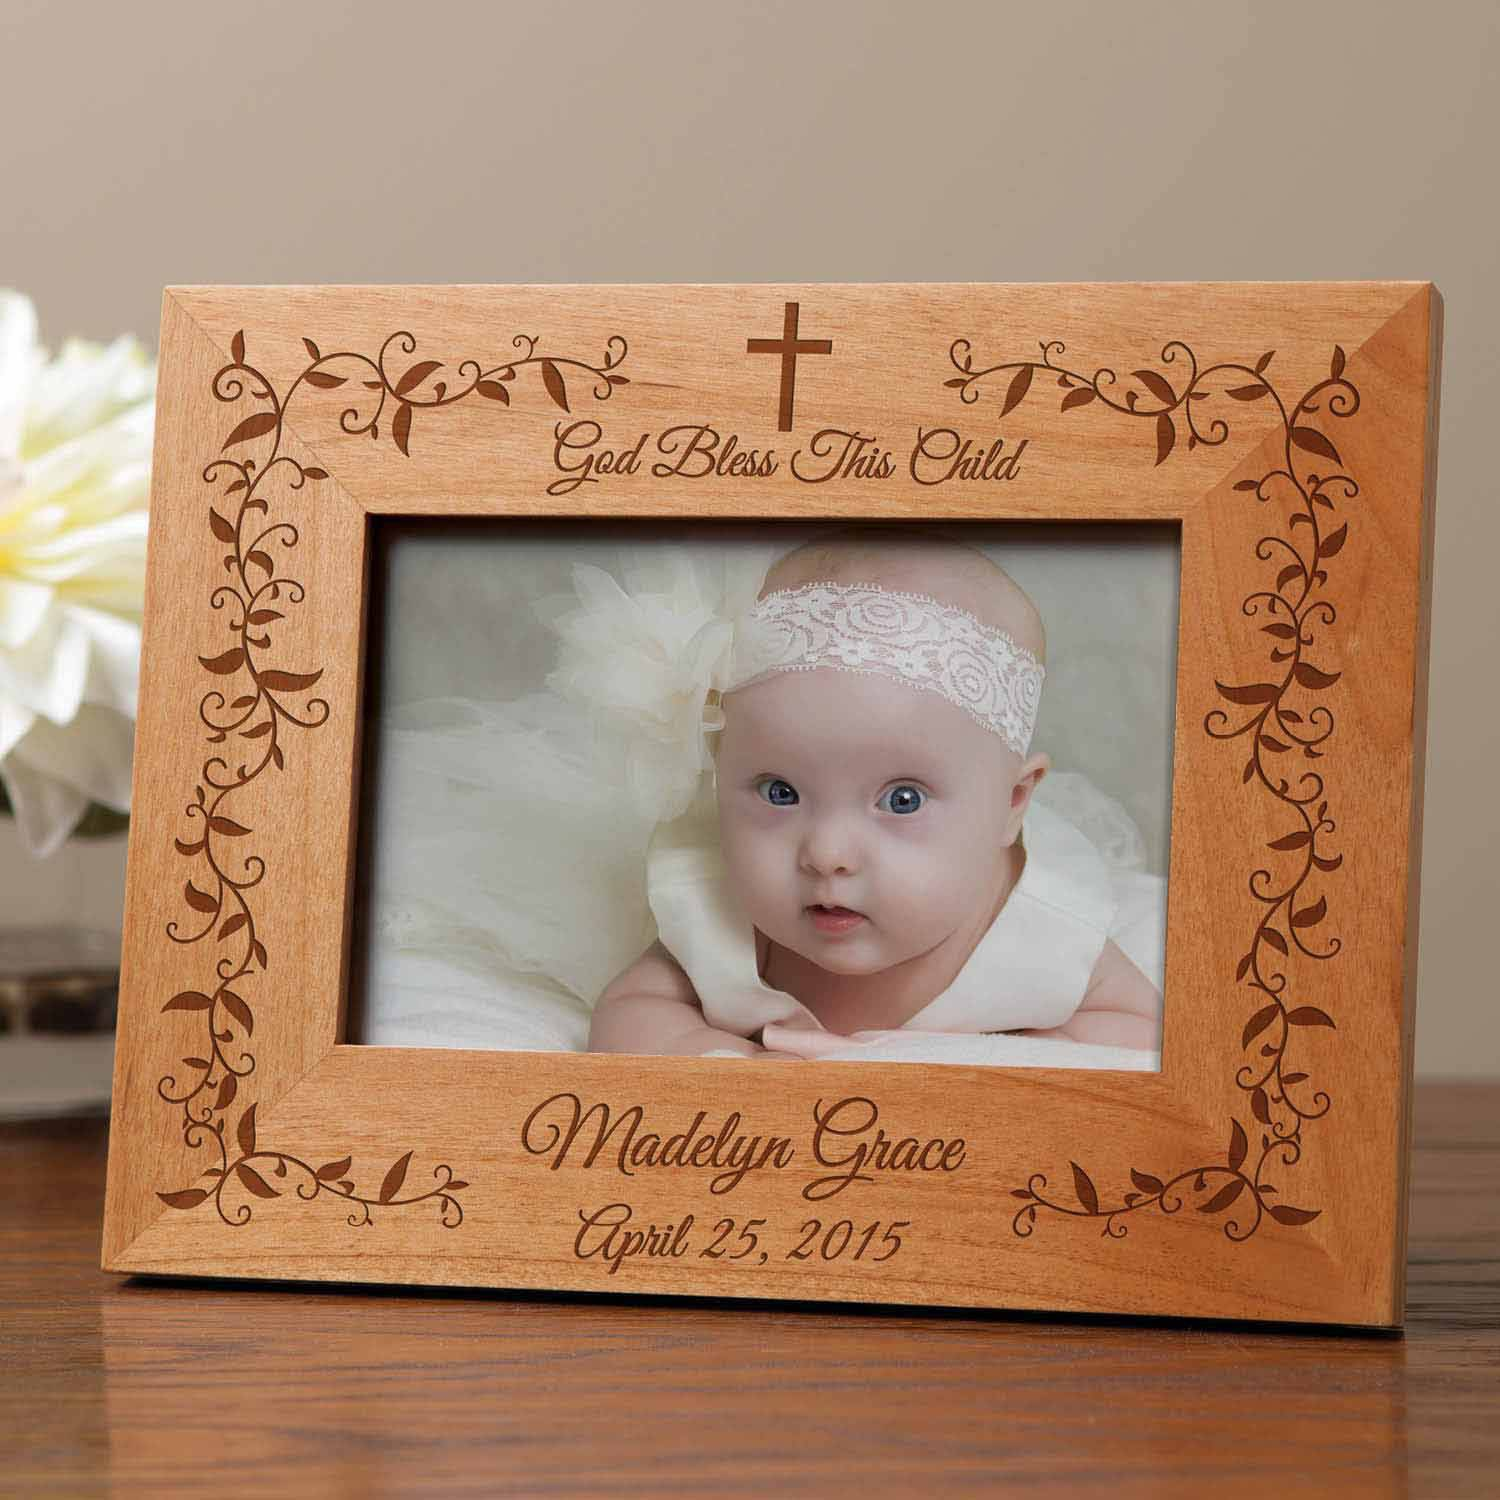 Personalized God Bless This Child Frame